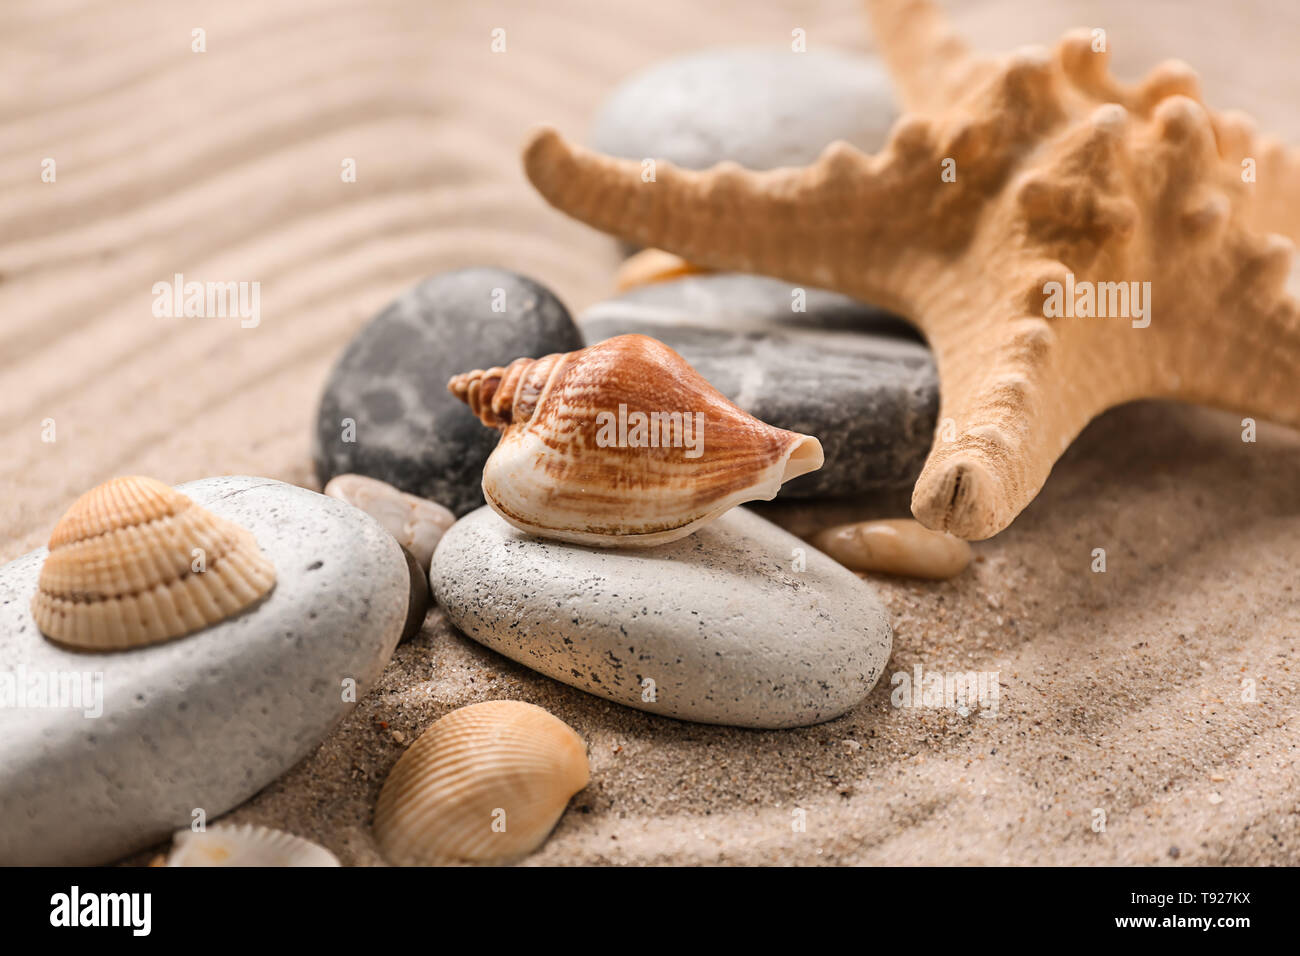 Different sea shells with stones and starfish on sand - Stock Image